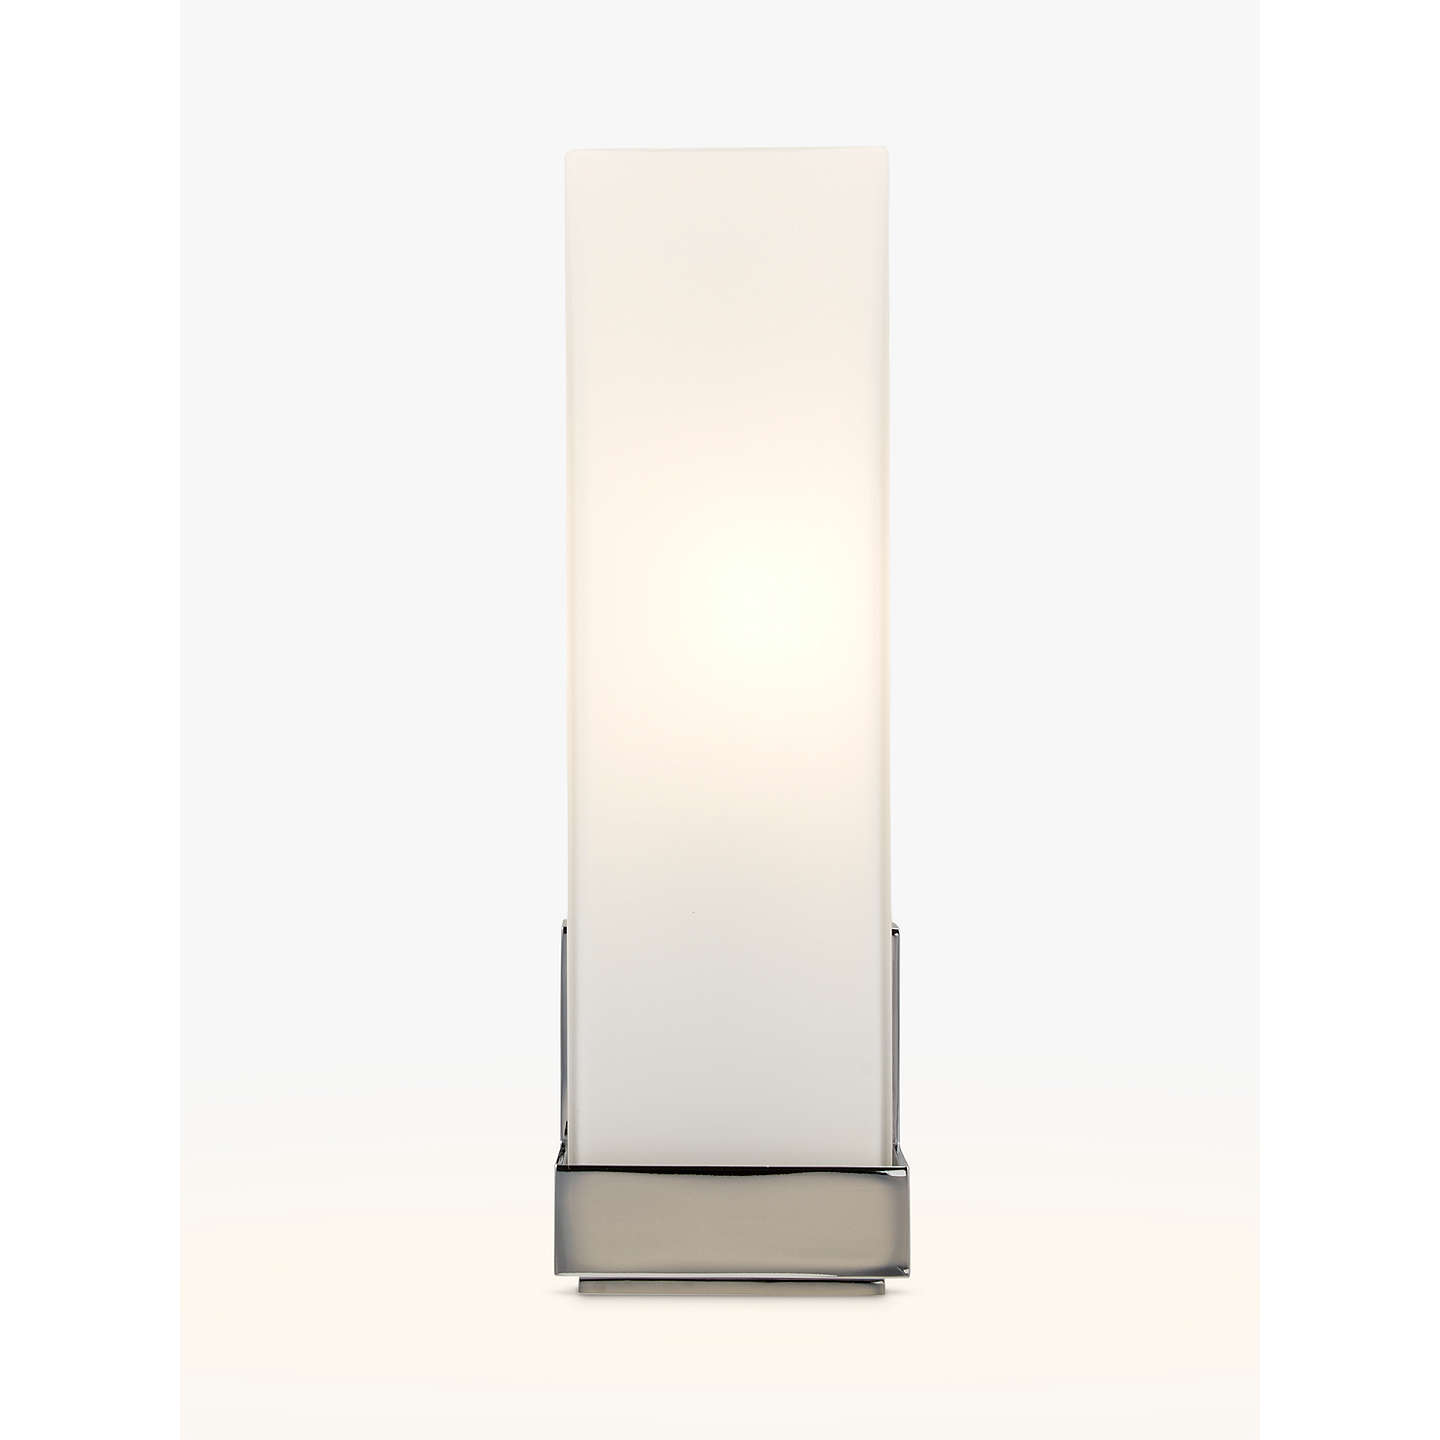 Astro taketa bathroom wall light whitechrome at john lewis buyastro taketa bathroom wall light whitechrome online at johnlewis aloadofball Choice Image